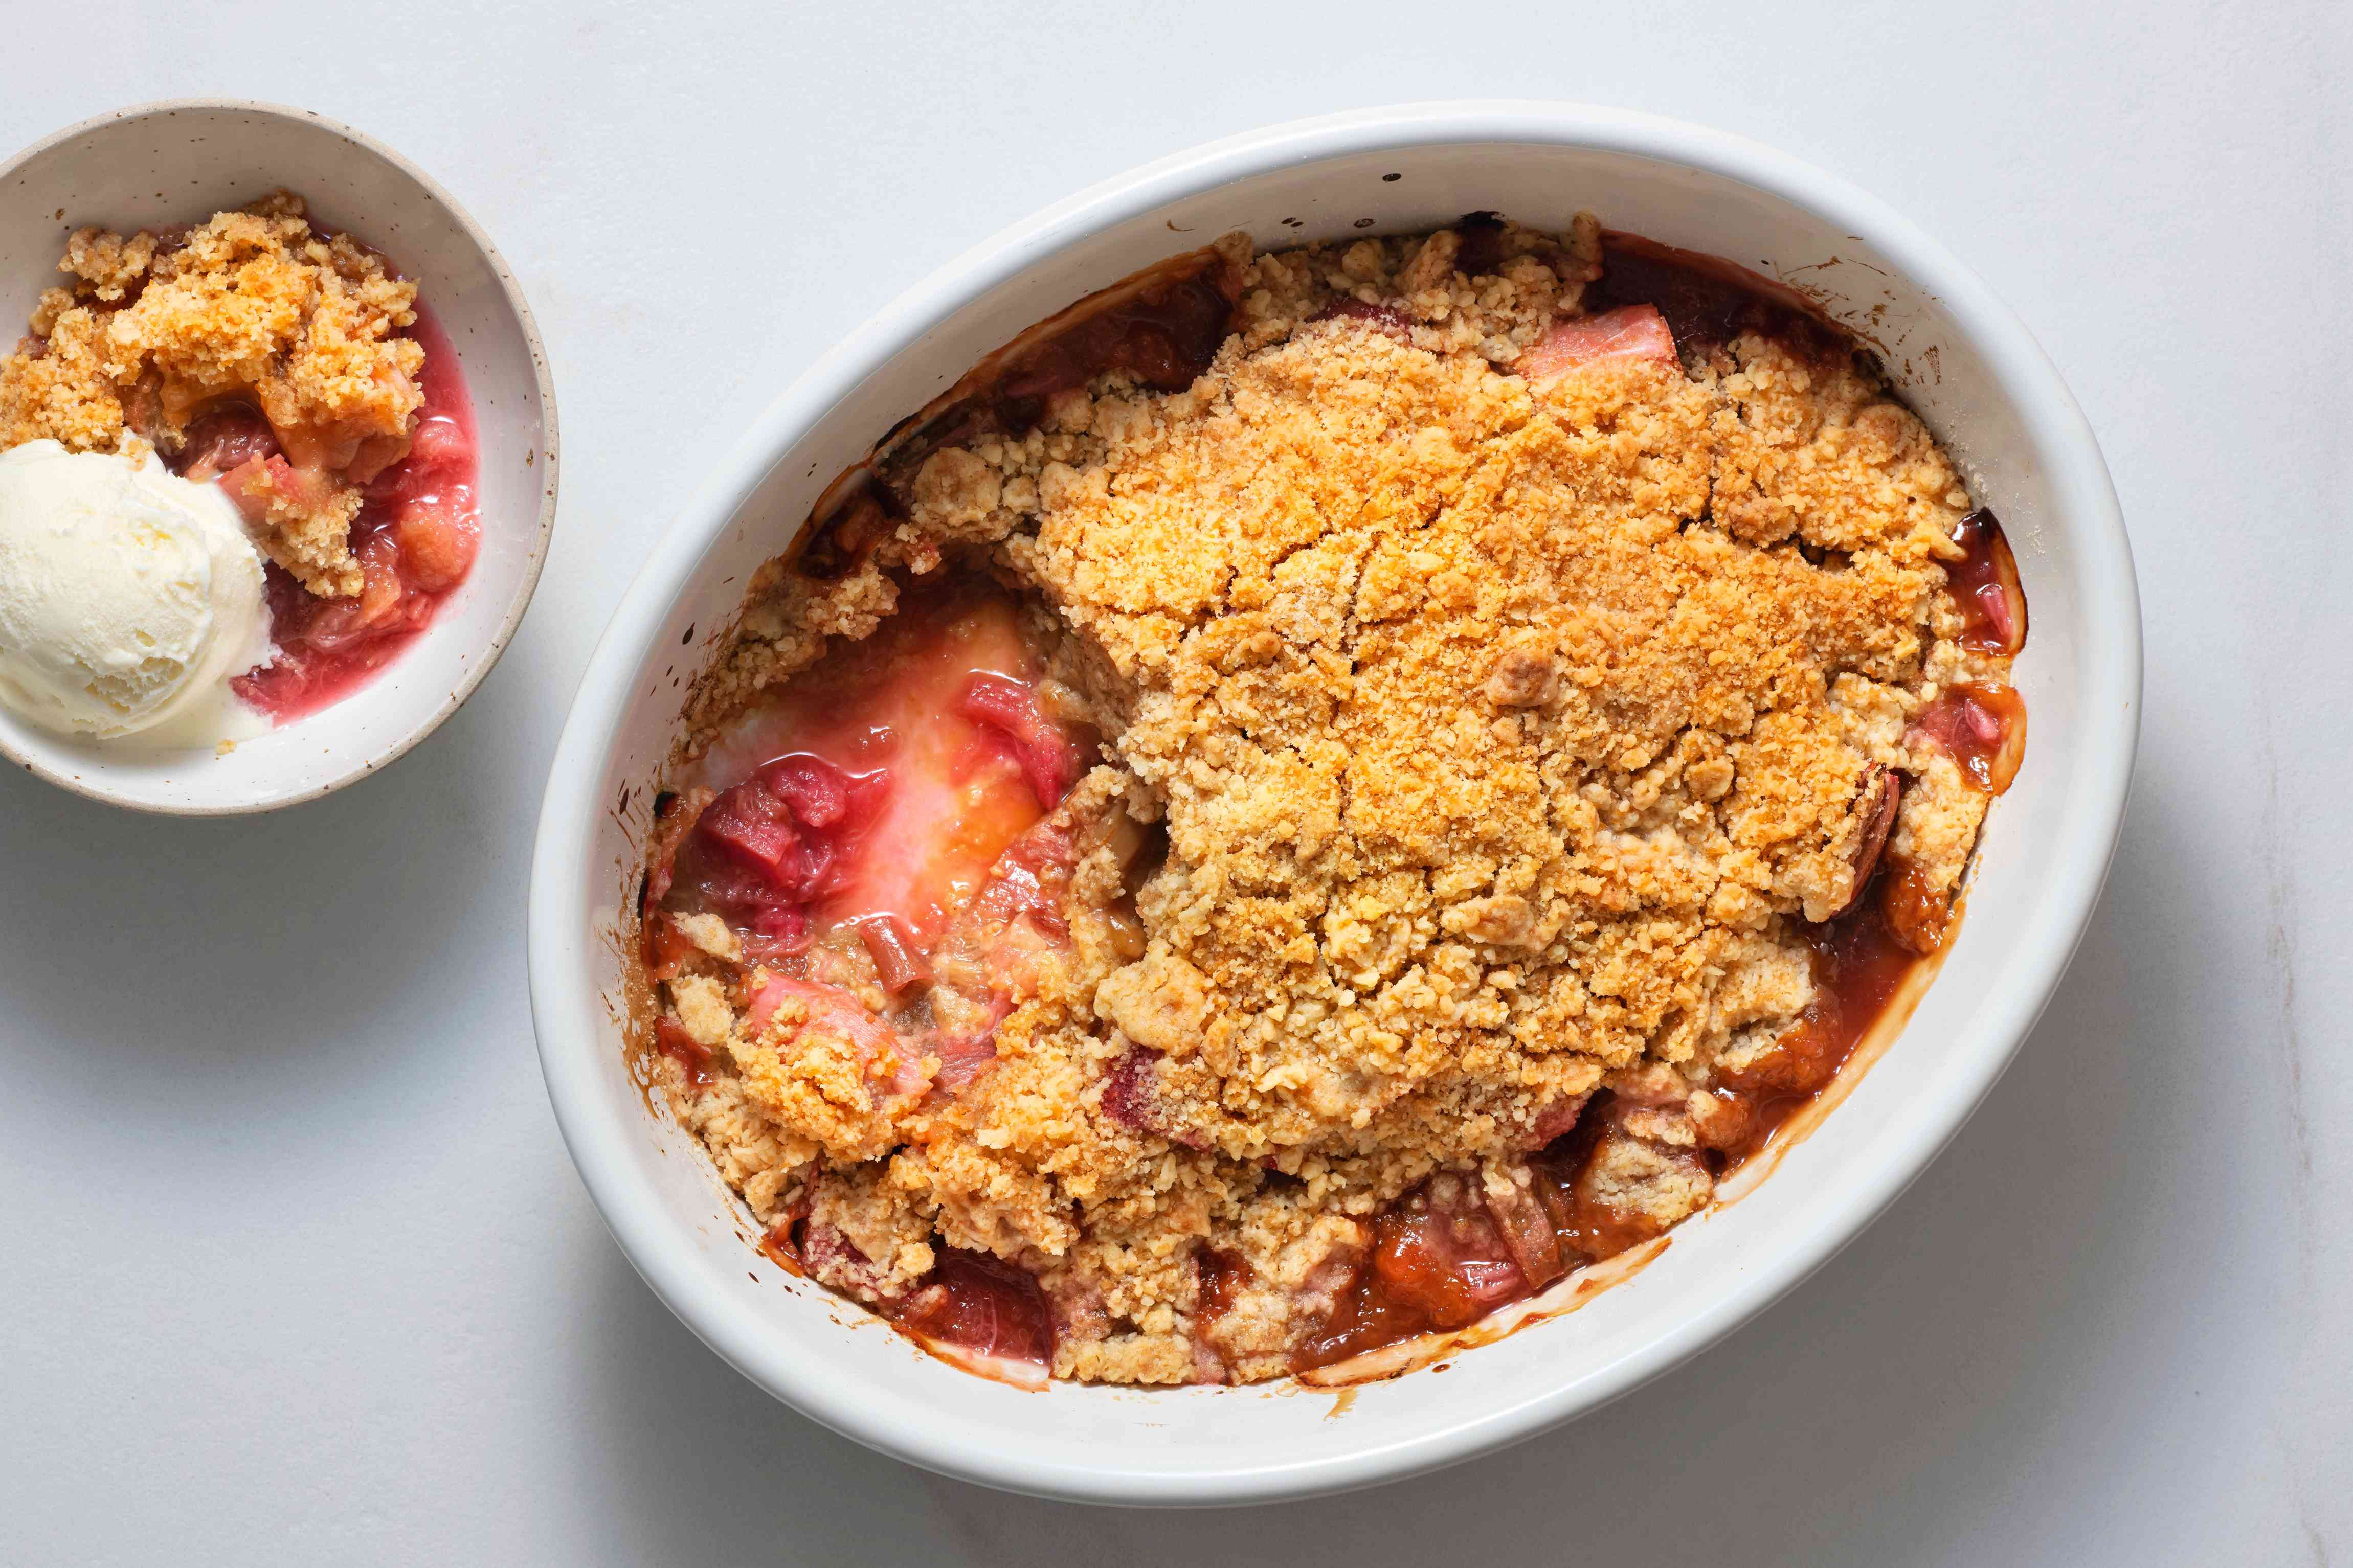 Roasted Rhubarb and Vanilla Crumble in a baking dish and also in a bowl served with ice cream